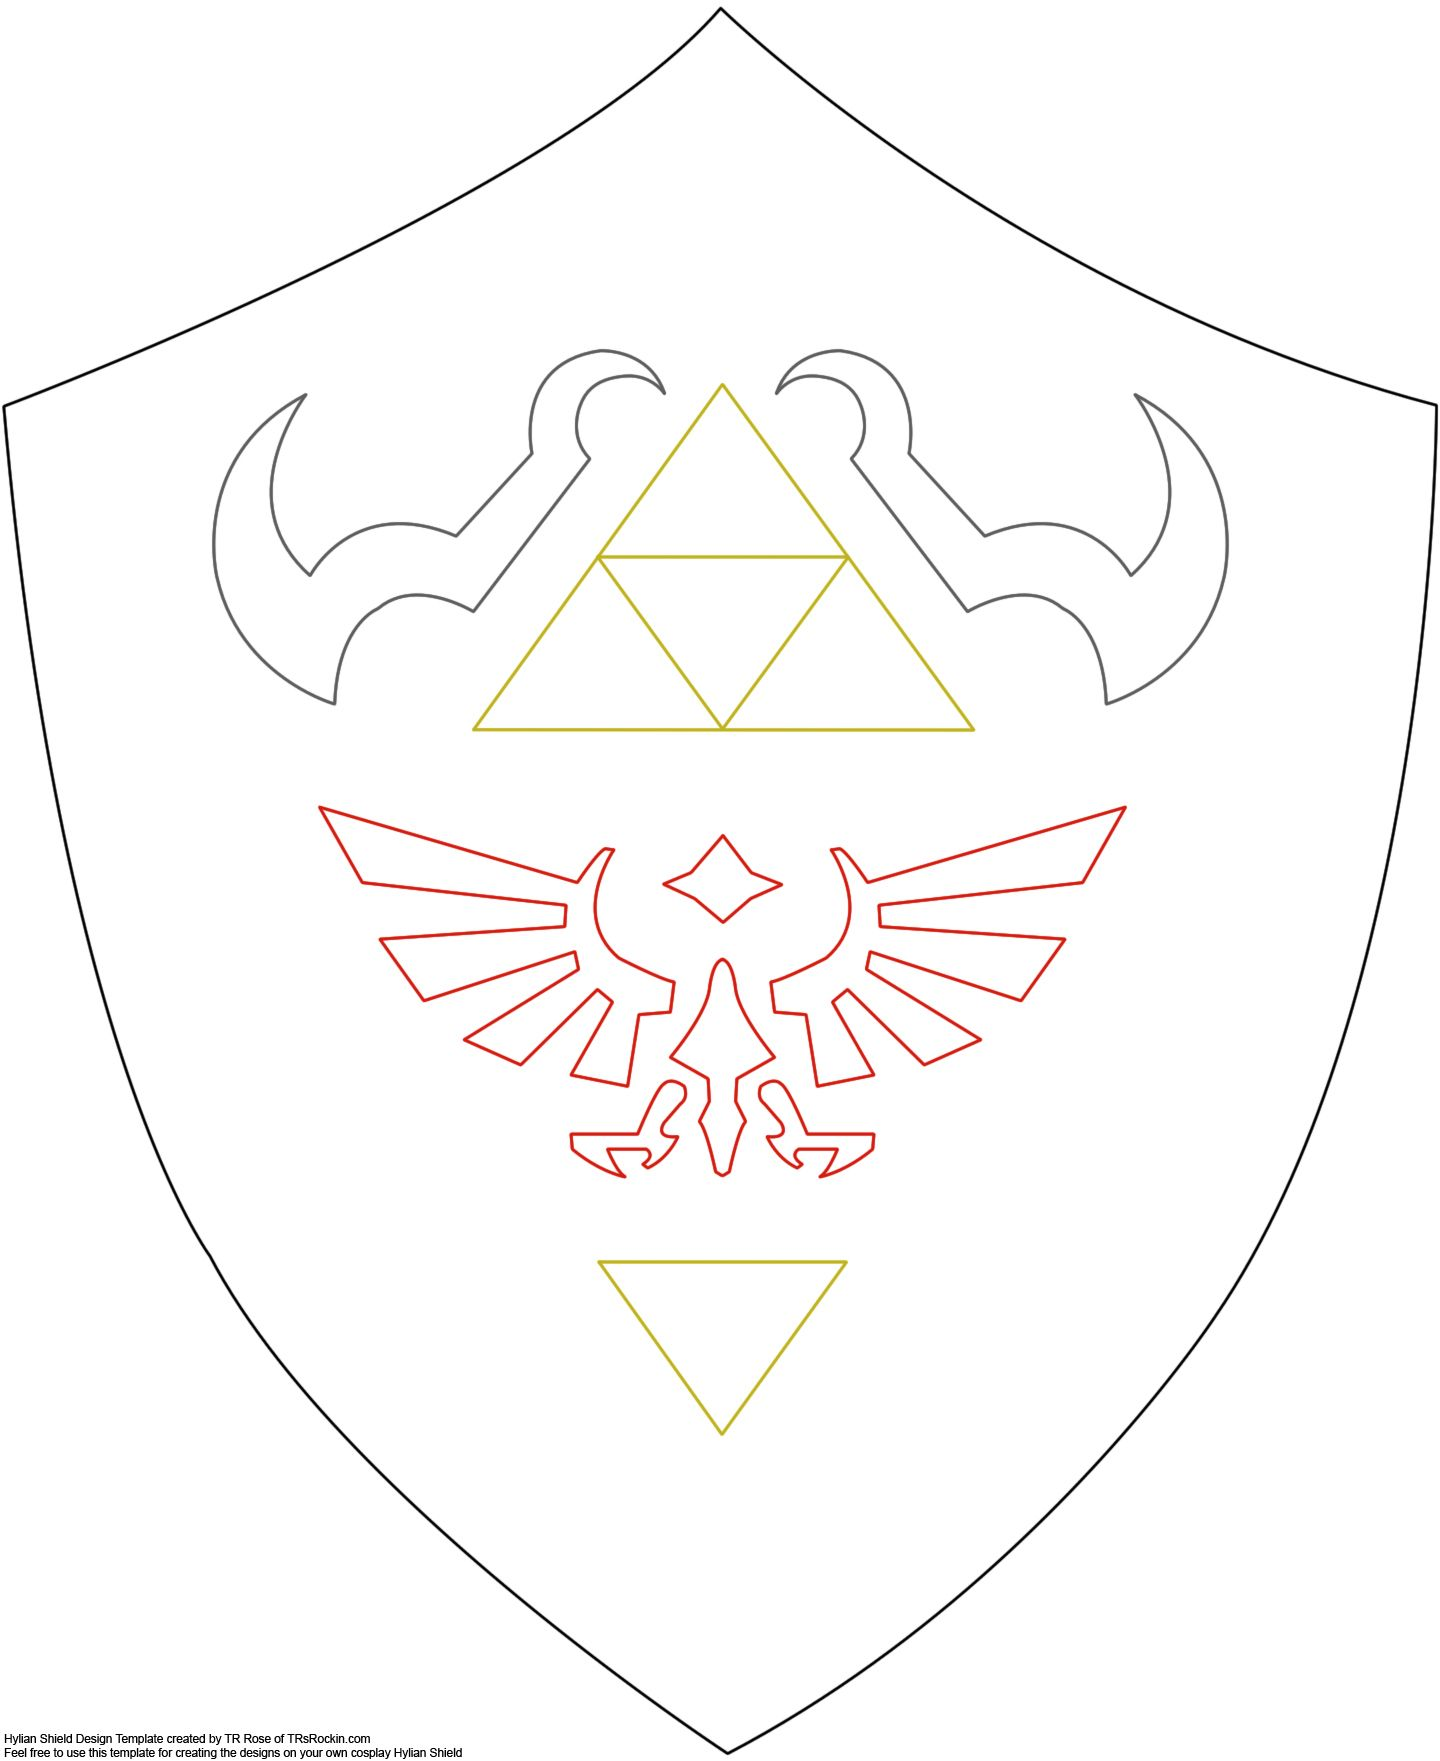 Shield pattern for future linkzelda costume httpfirefly shield pattern for future linkzelda costume httpfirefly biocorpaavc Images